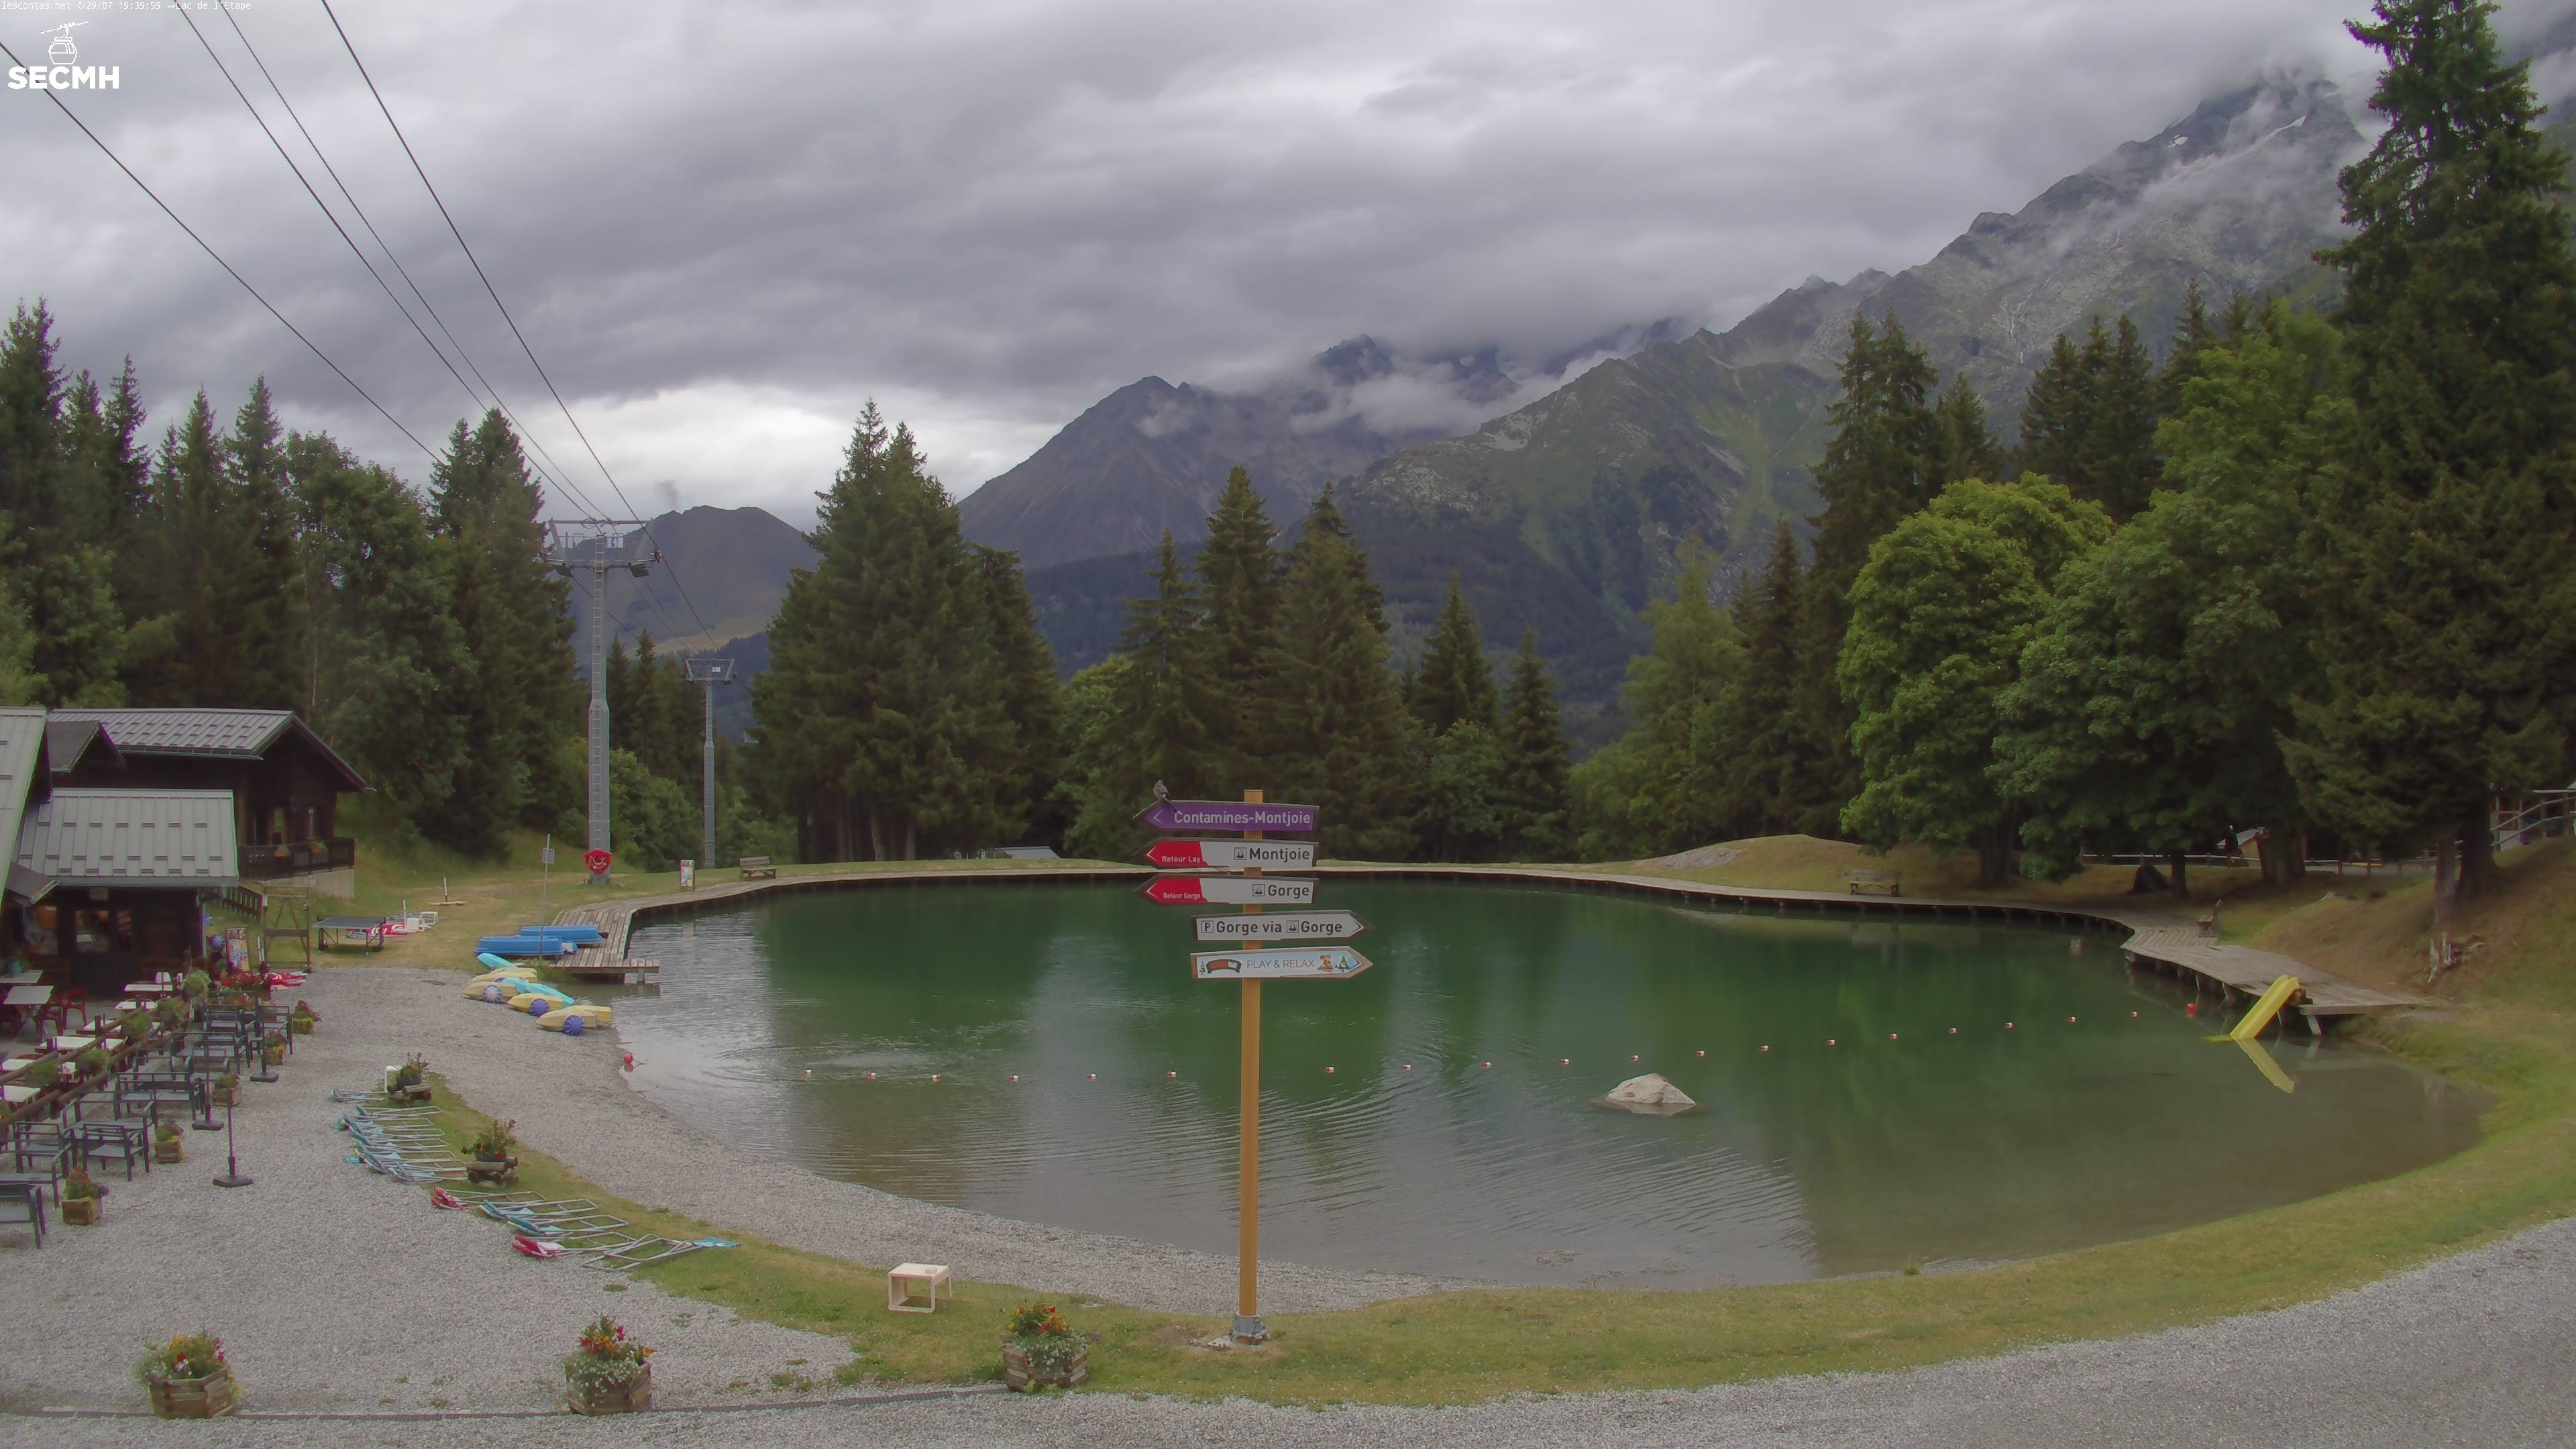 Webcam CONTAMINES MONTJOIE (LES) - Hameaux du Lay